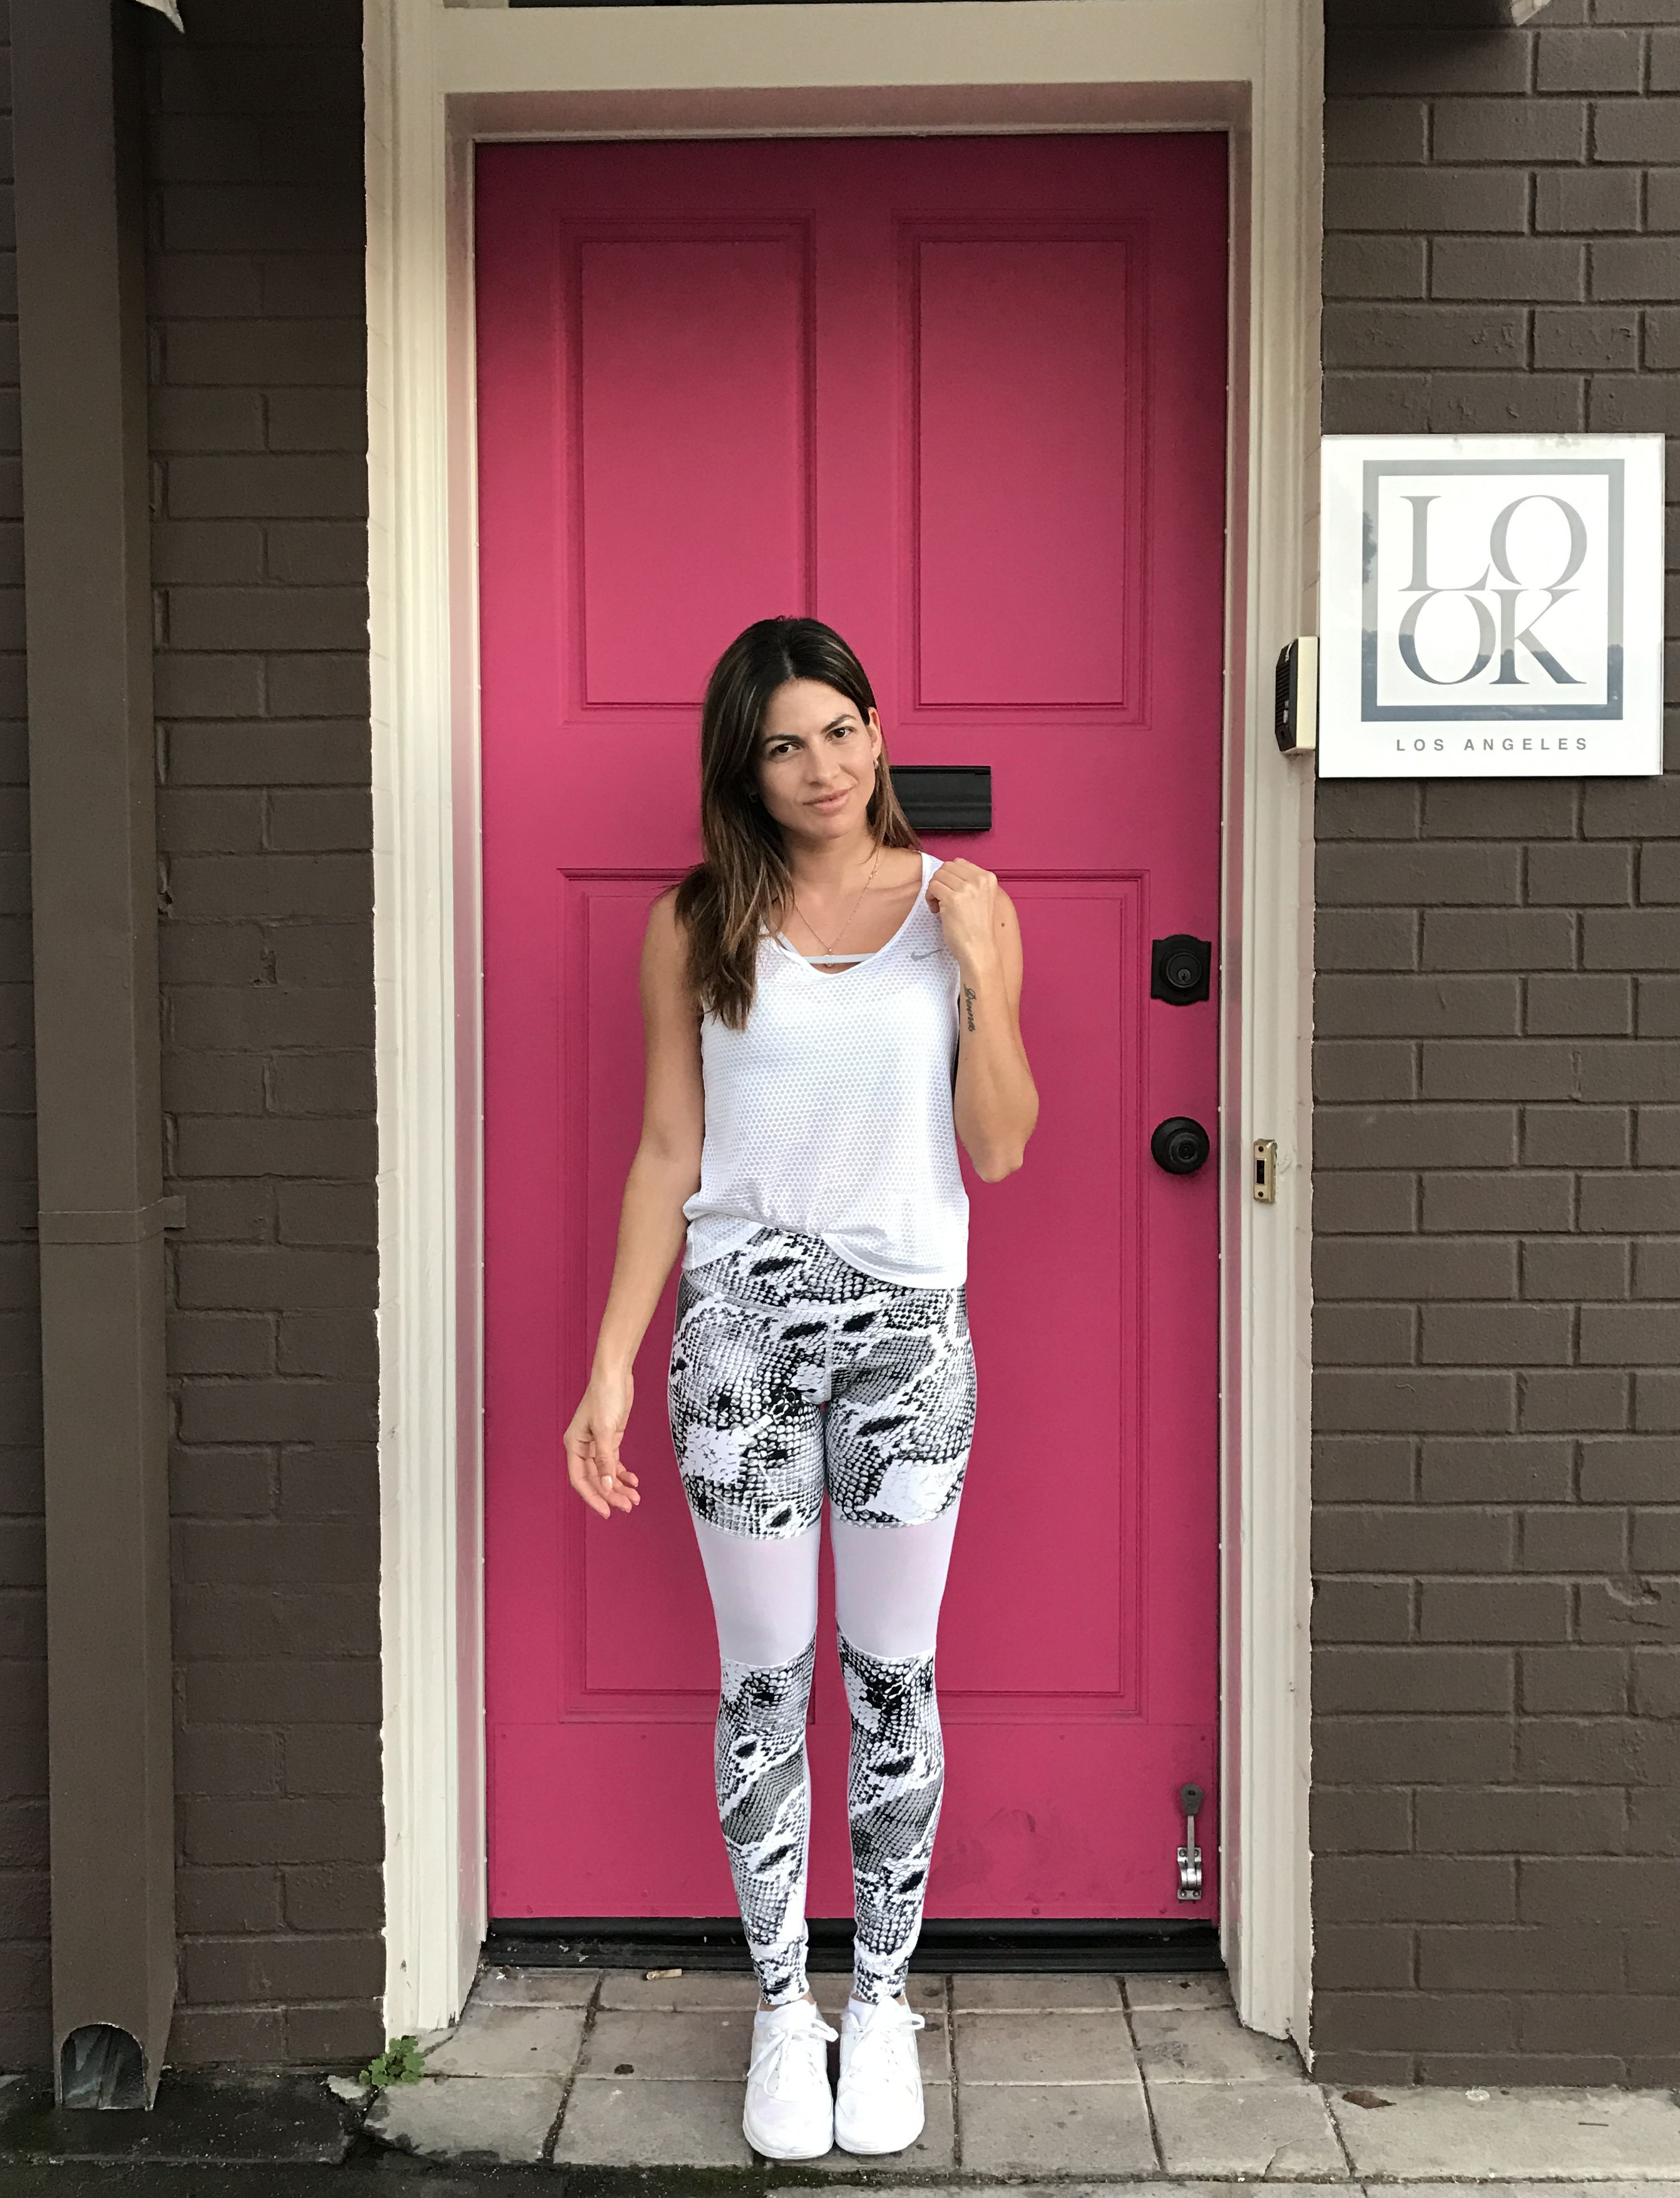 Outfit varley instagram photo photo and video photo